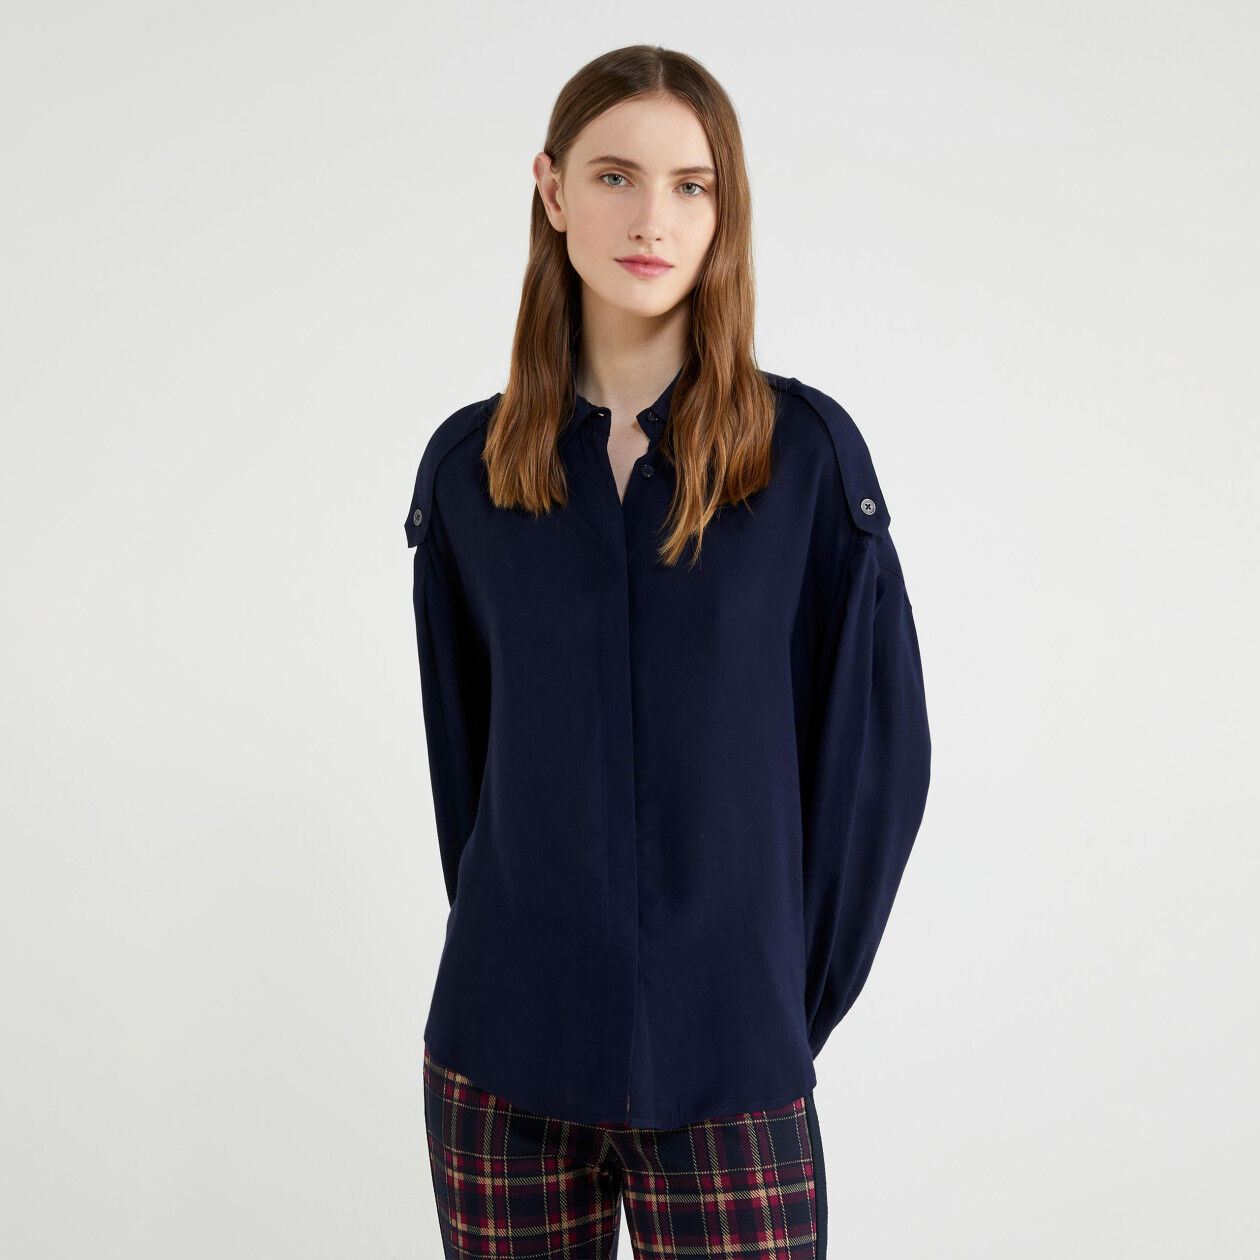 Shirt with tabs on the shoulders